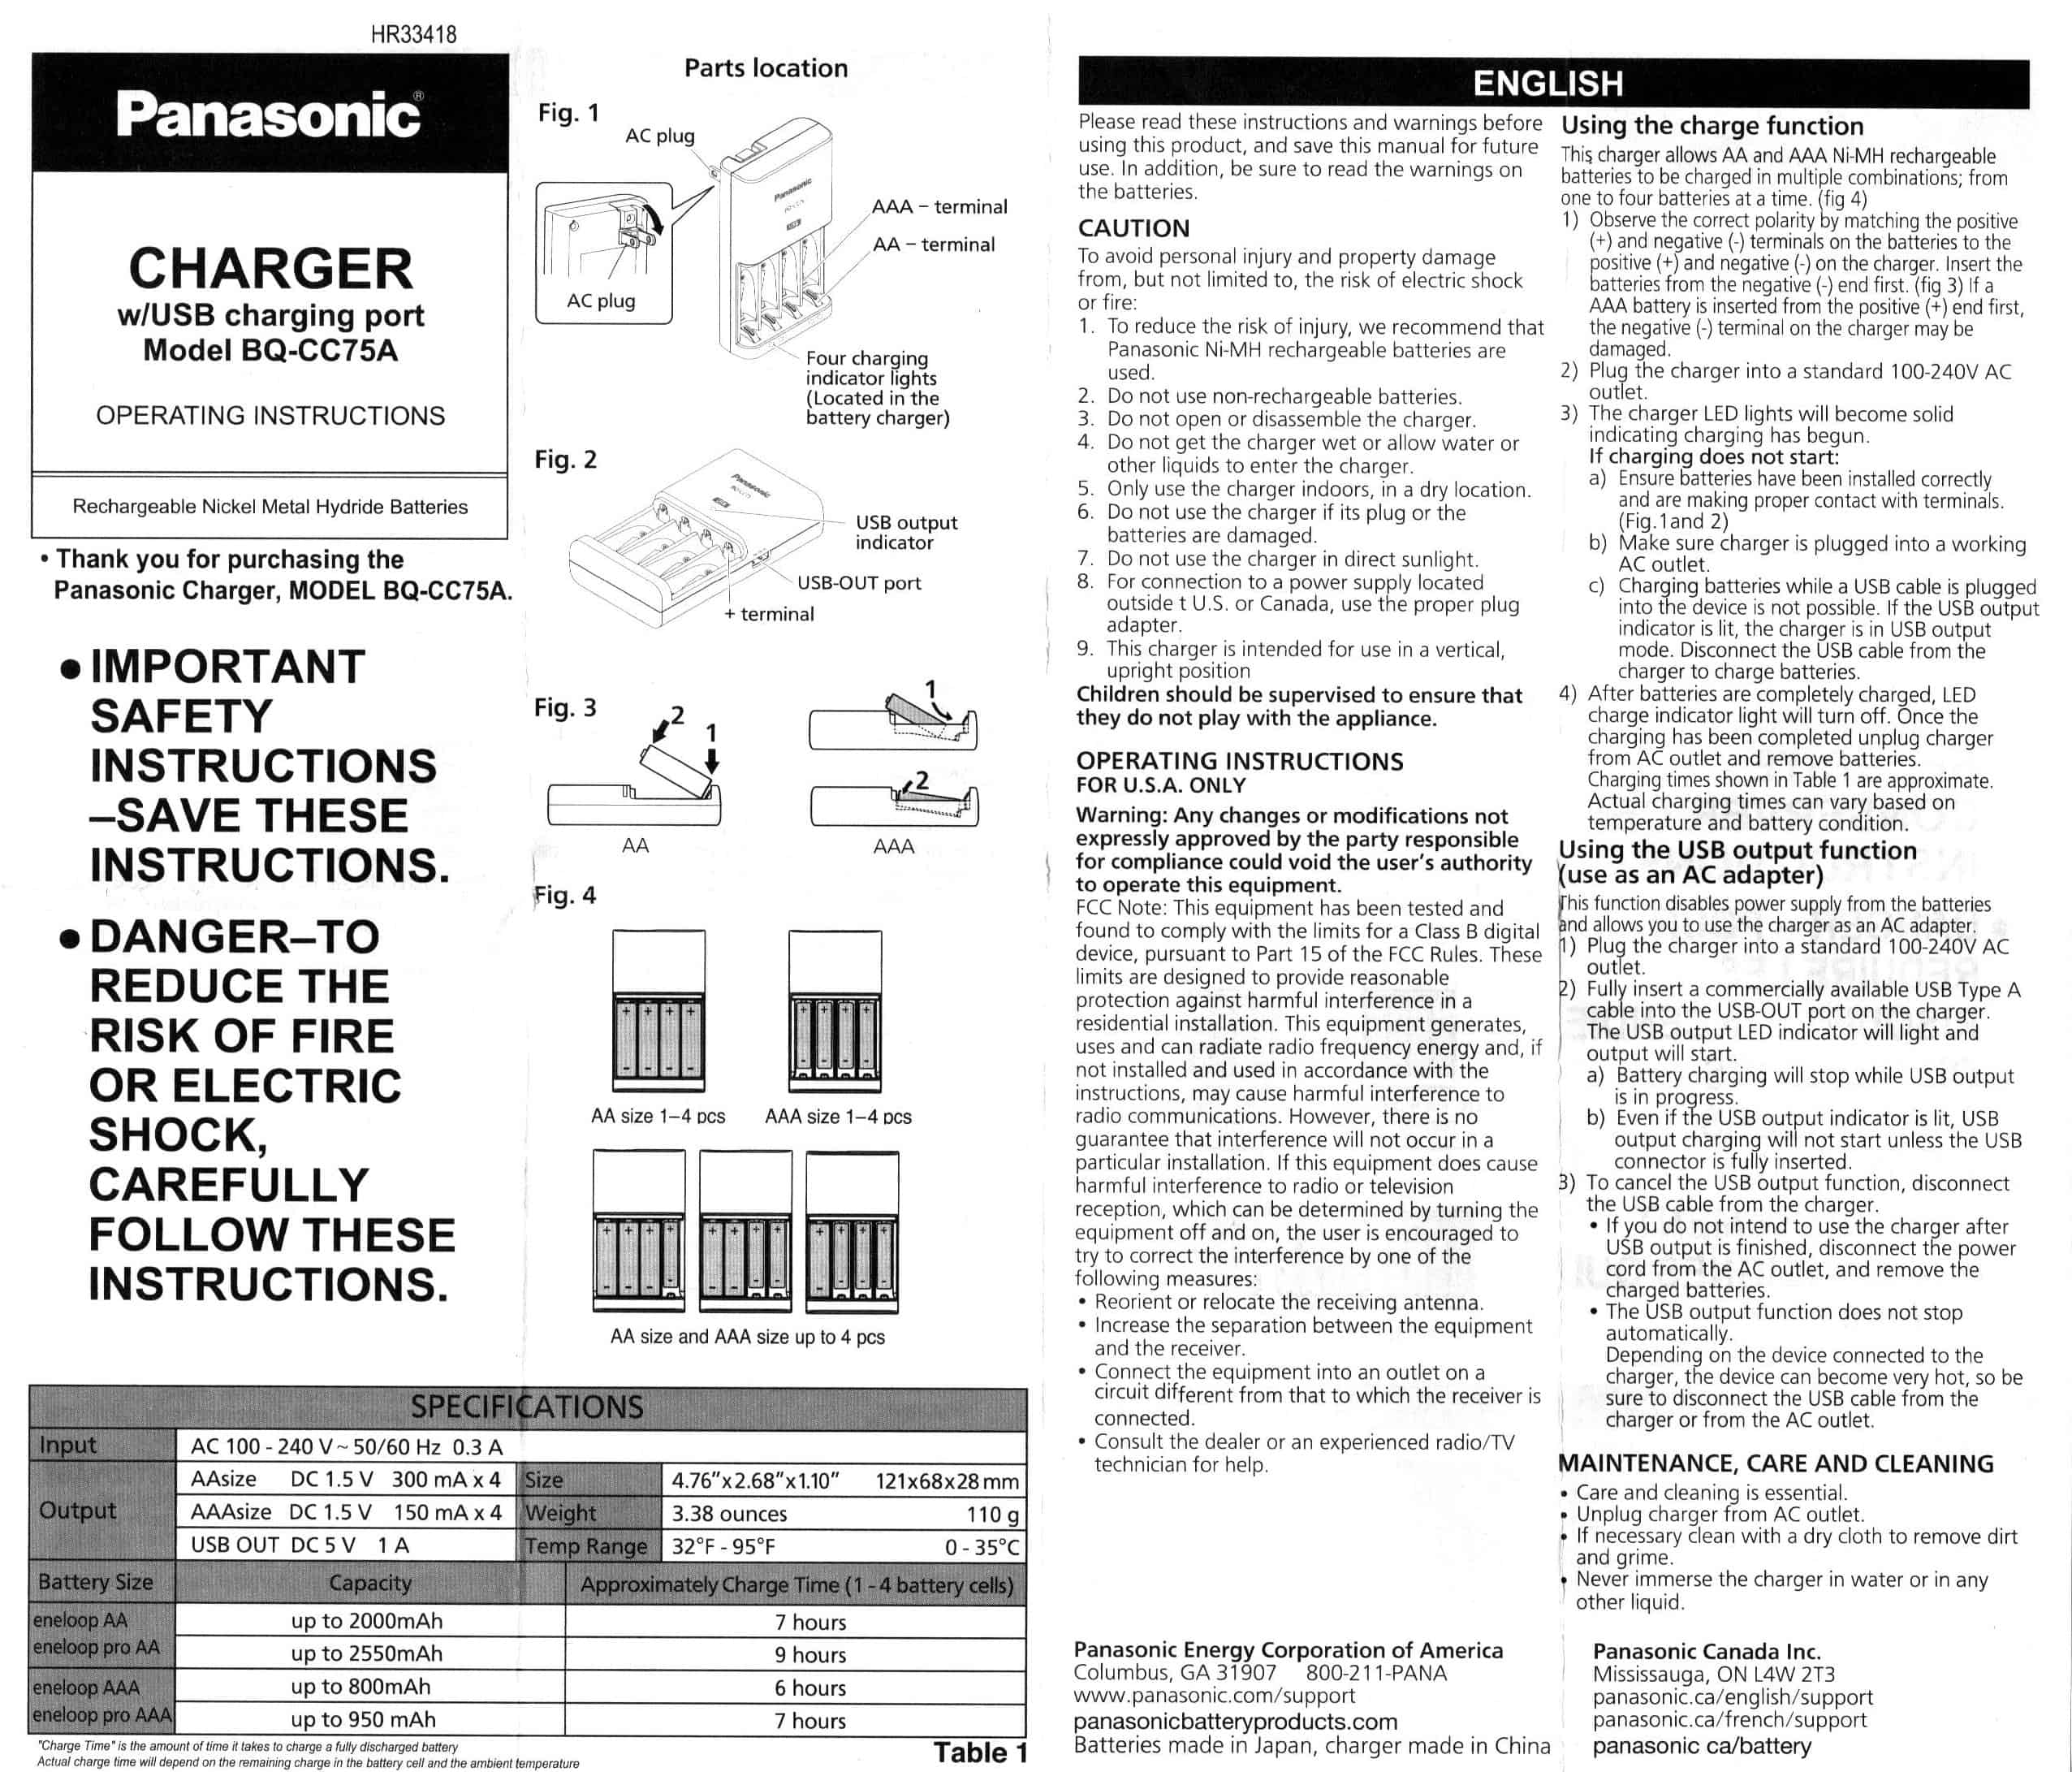 Complete Sanyo And Panasonic Eneloop Charger List The